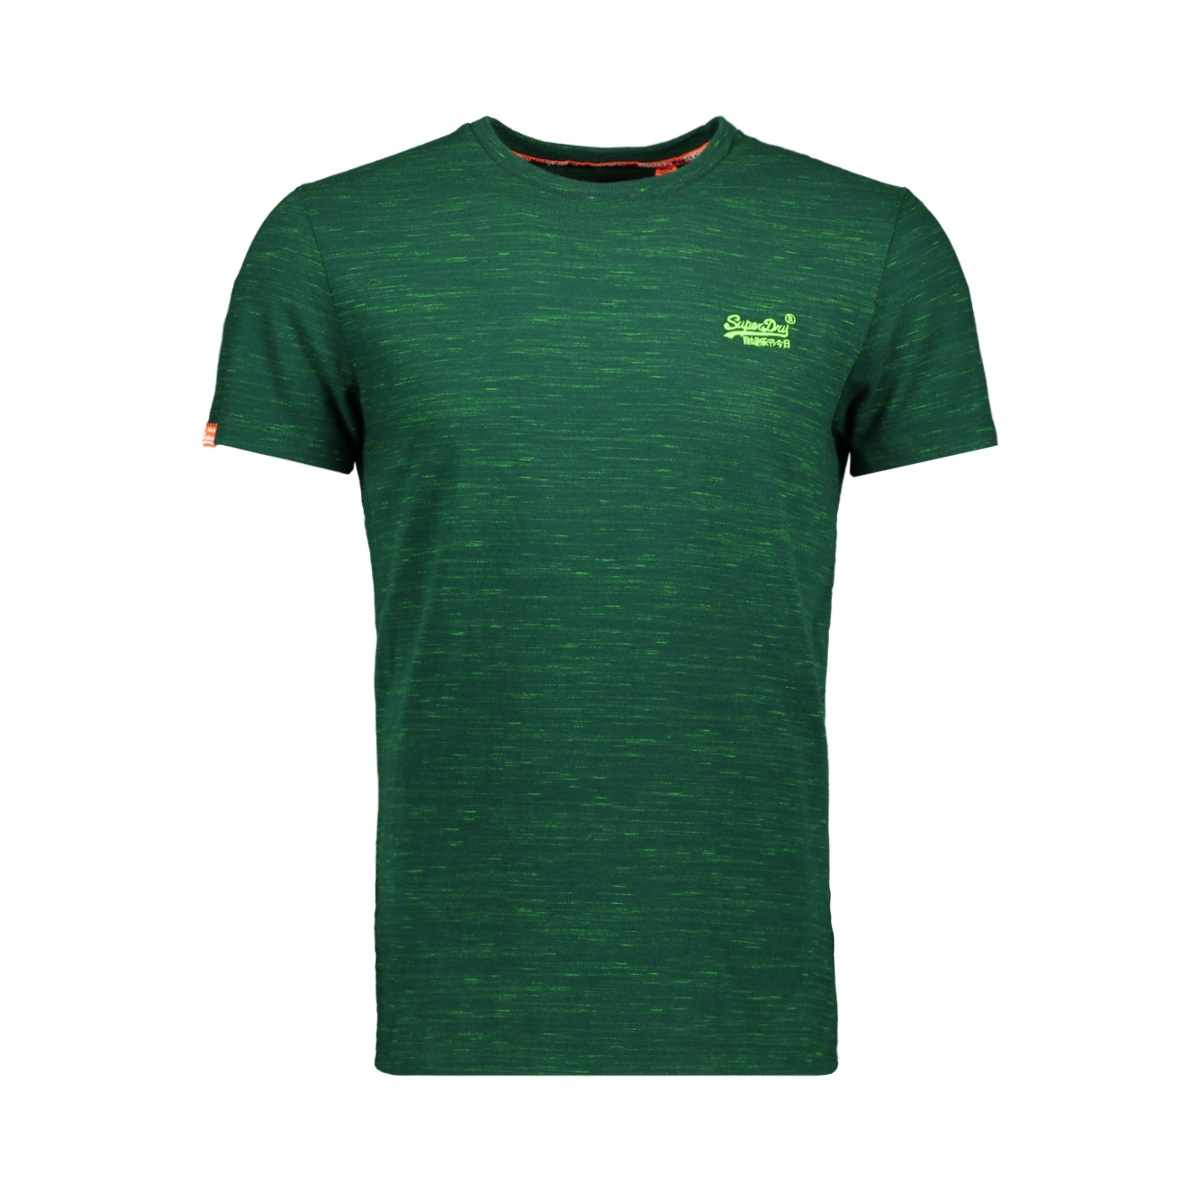 vintage embroidery s/s m10107et superdry t-shirt apple green space dye